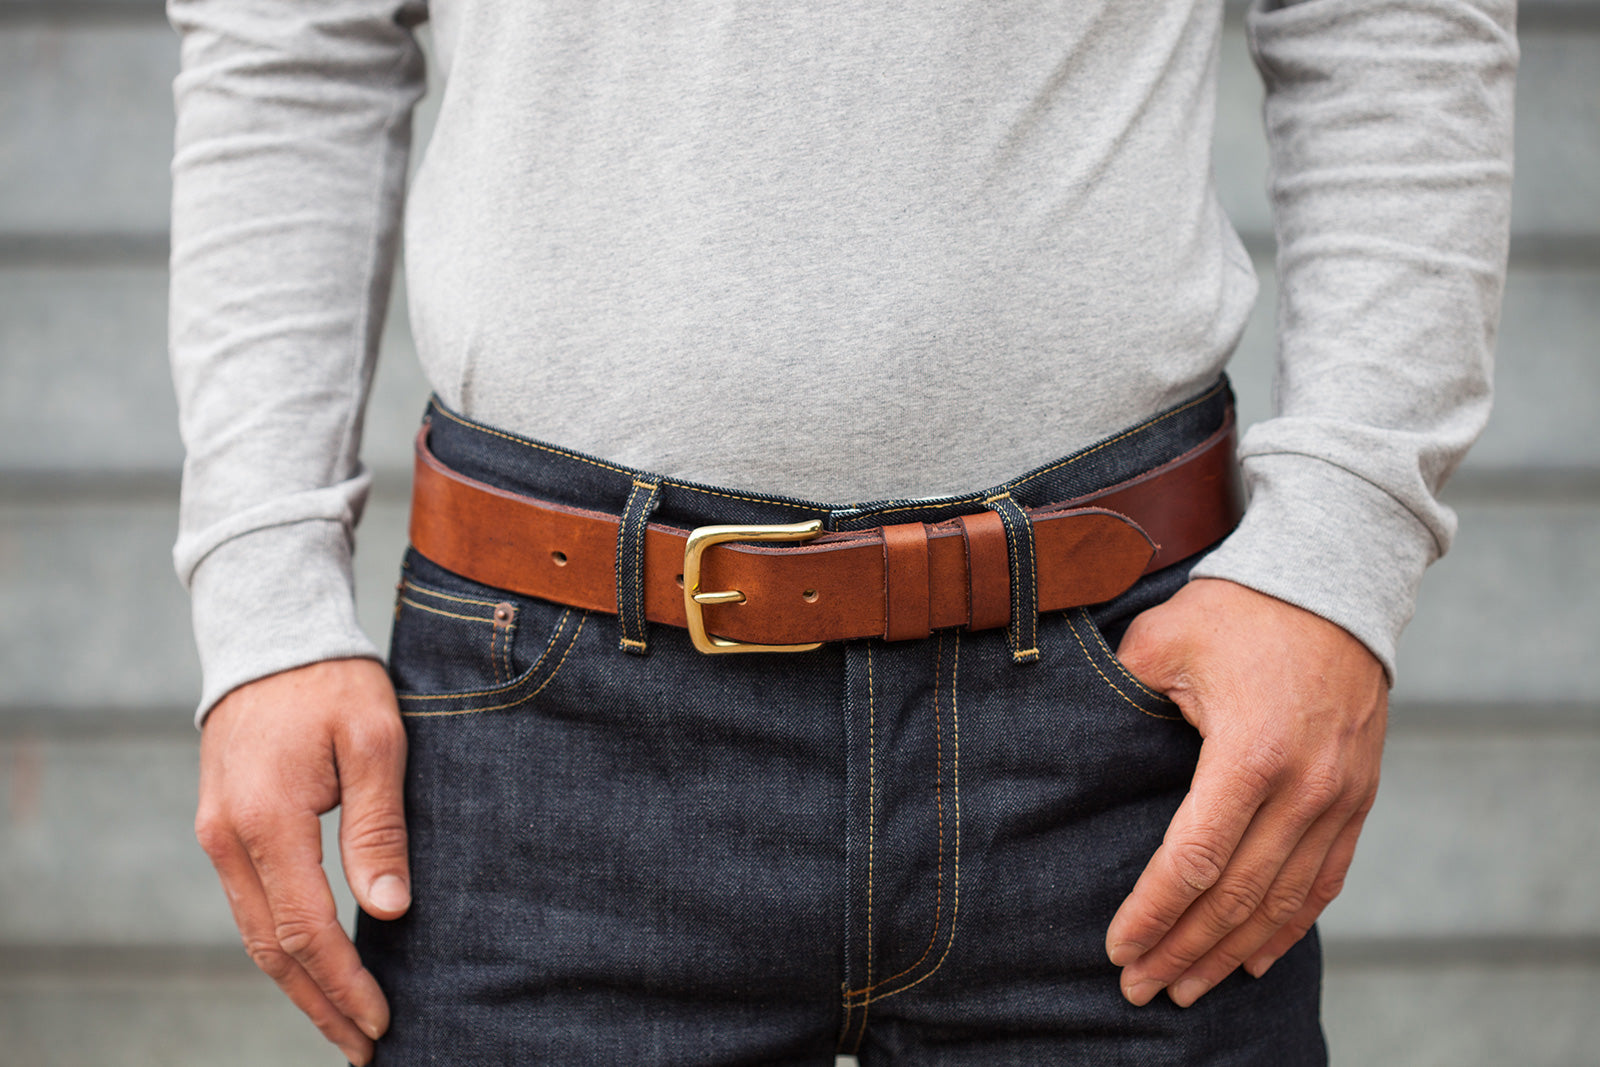 Oak Bark Tanned Leather Belt by Tanner Bates